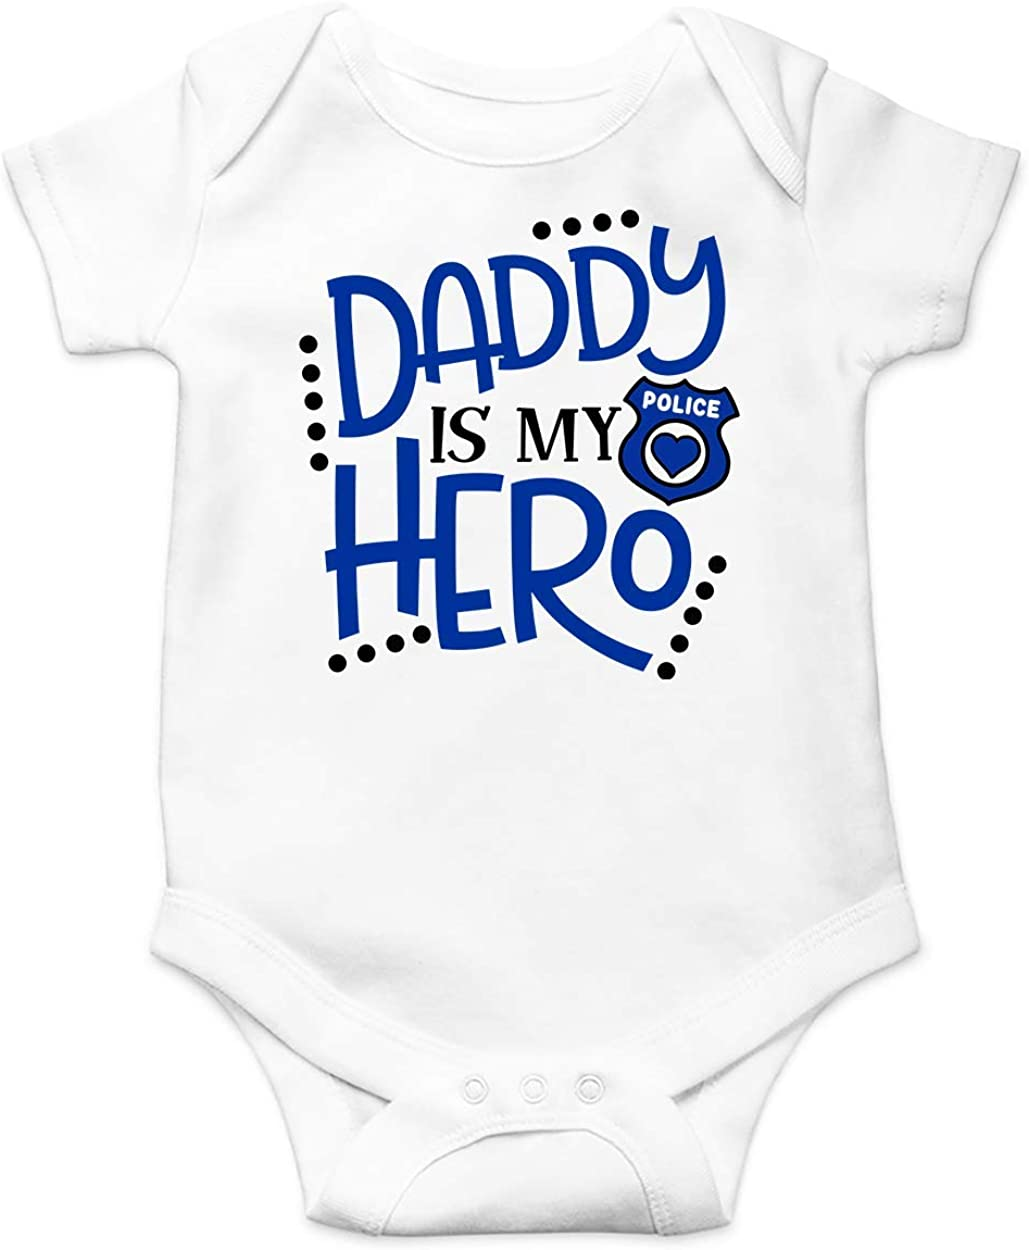 Amazon Com Dst Apparel Co Daddy Is My Hero Police Dad Job Pride Baby Bodysuit Toddler Outfit Infant Cloth Newborn Jumpsuit Clothing